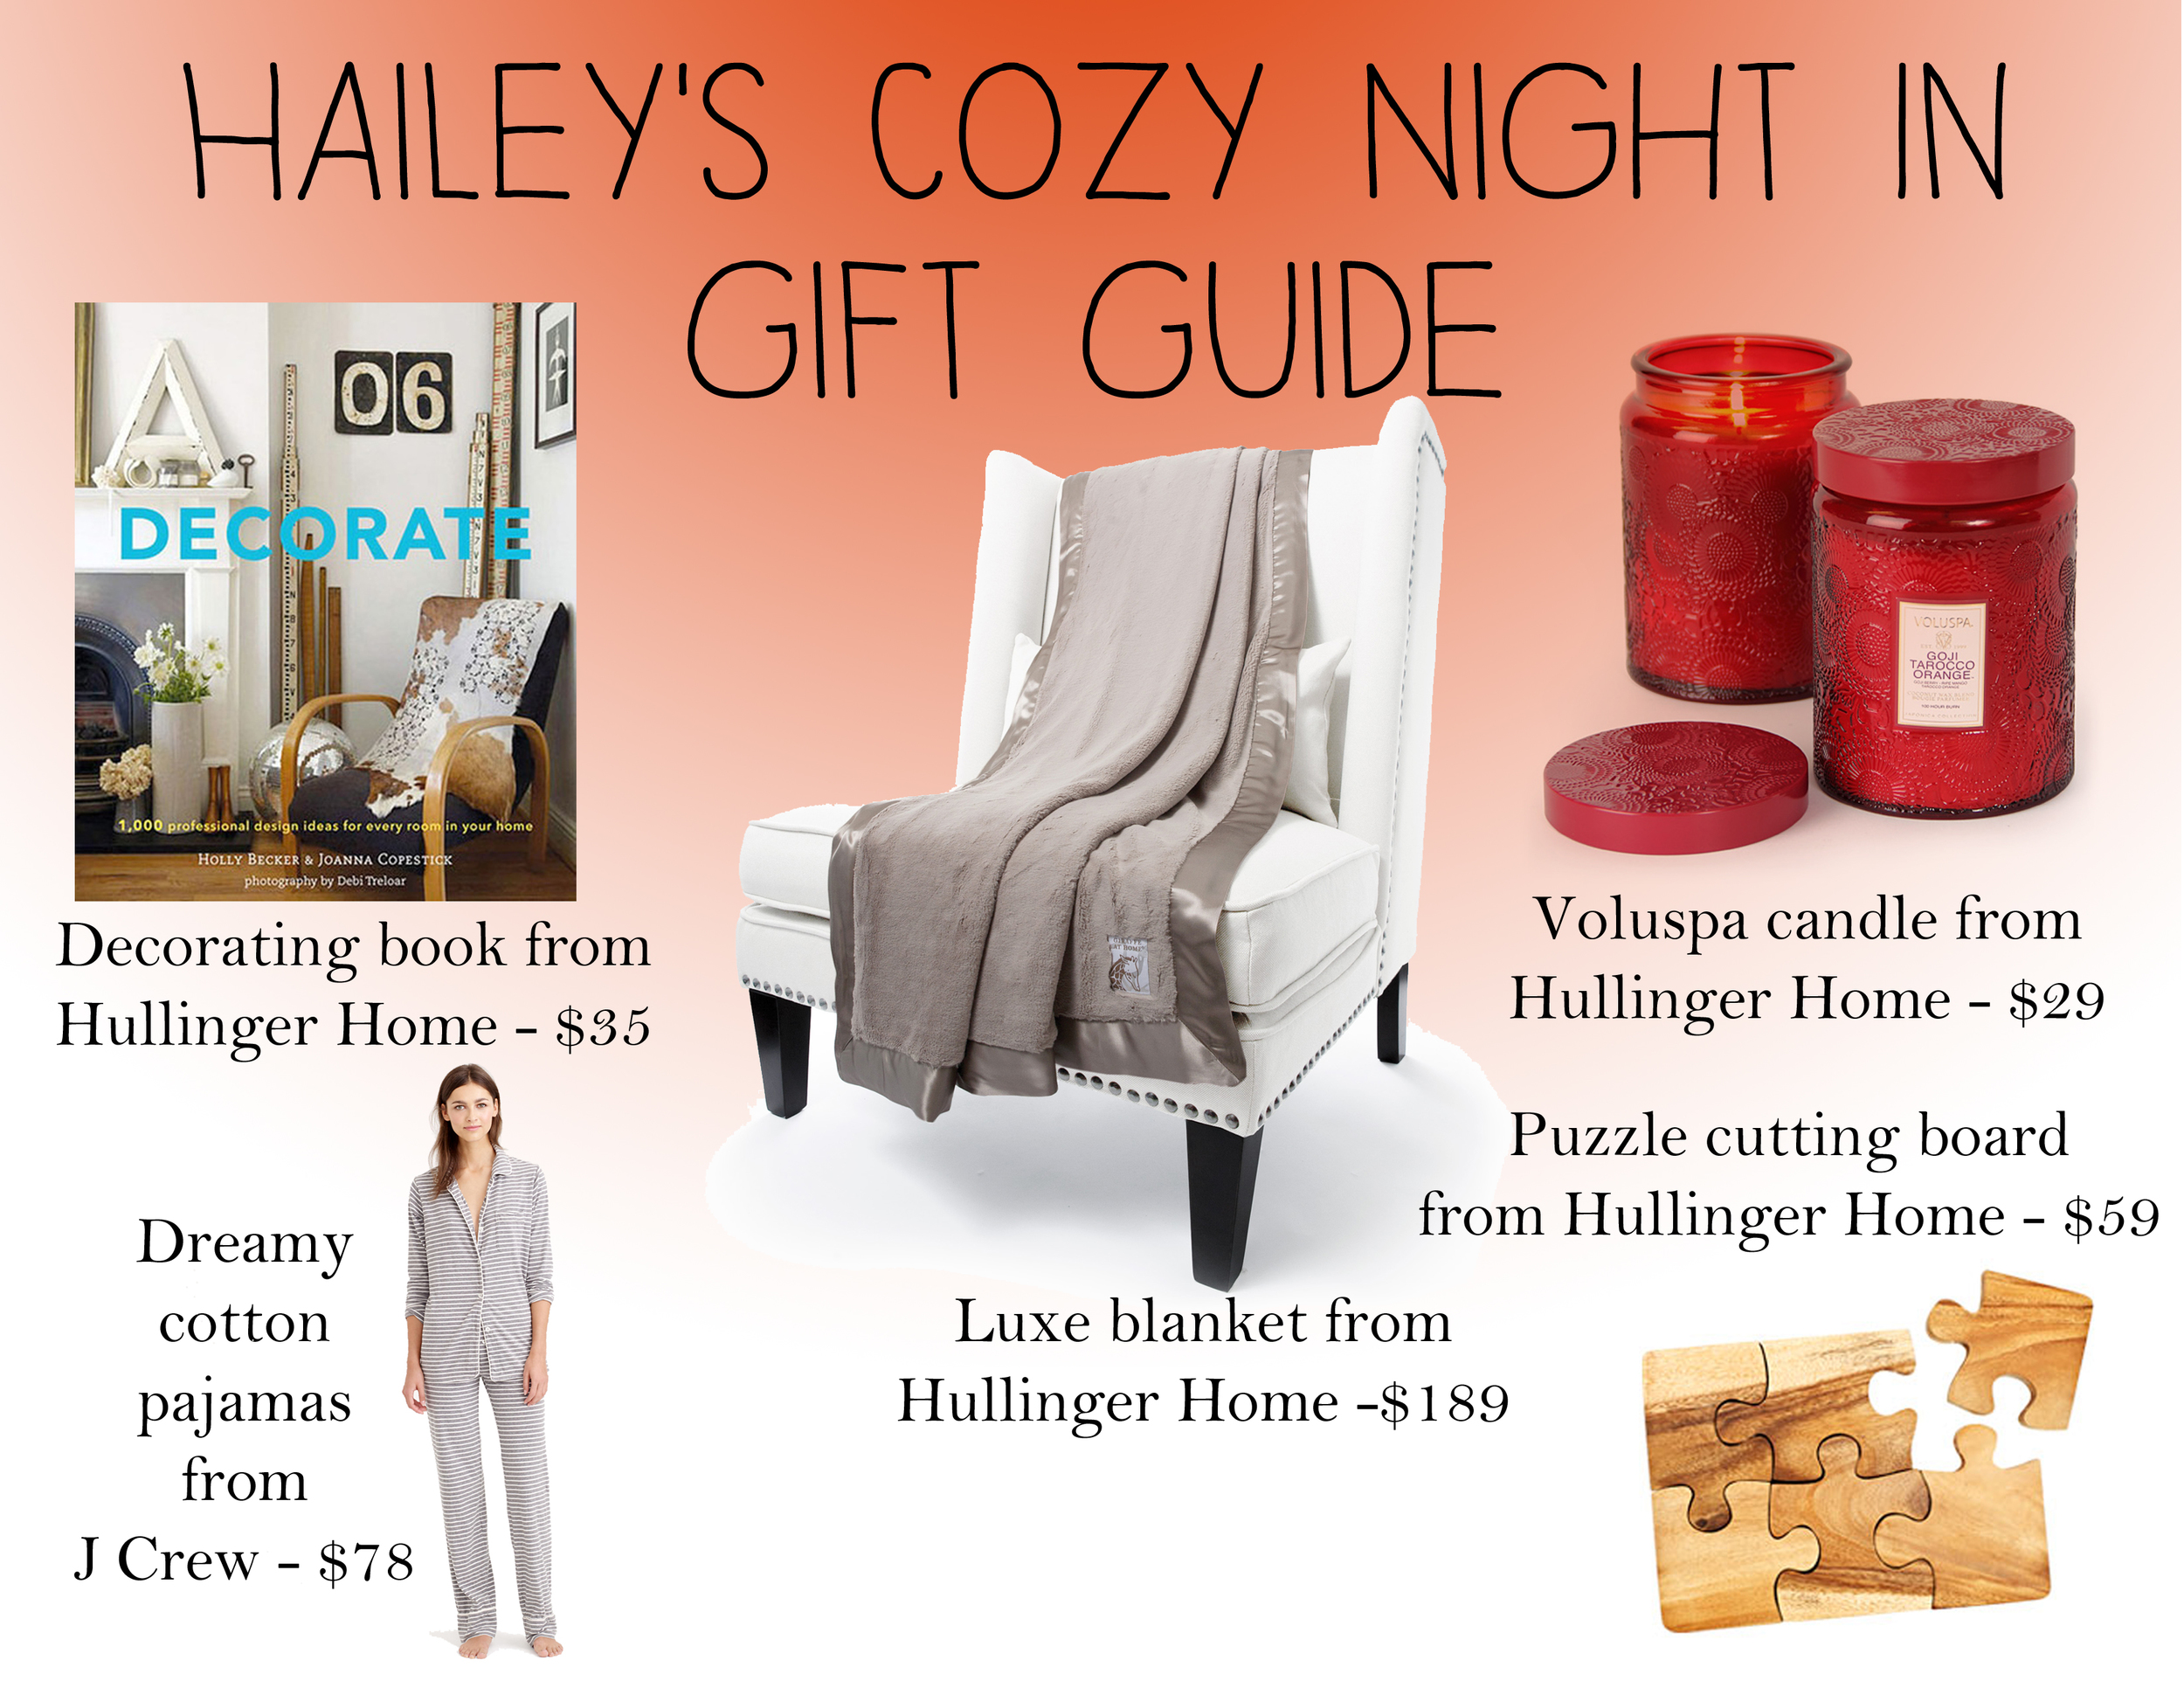 cozy night in, designer gift guide, holiday gift guide